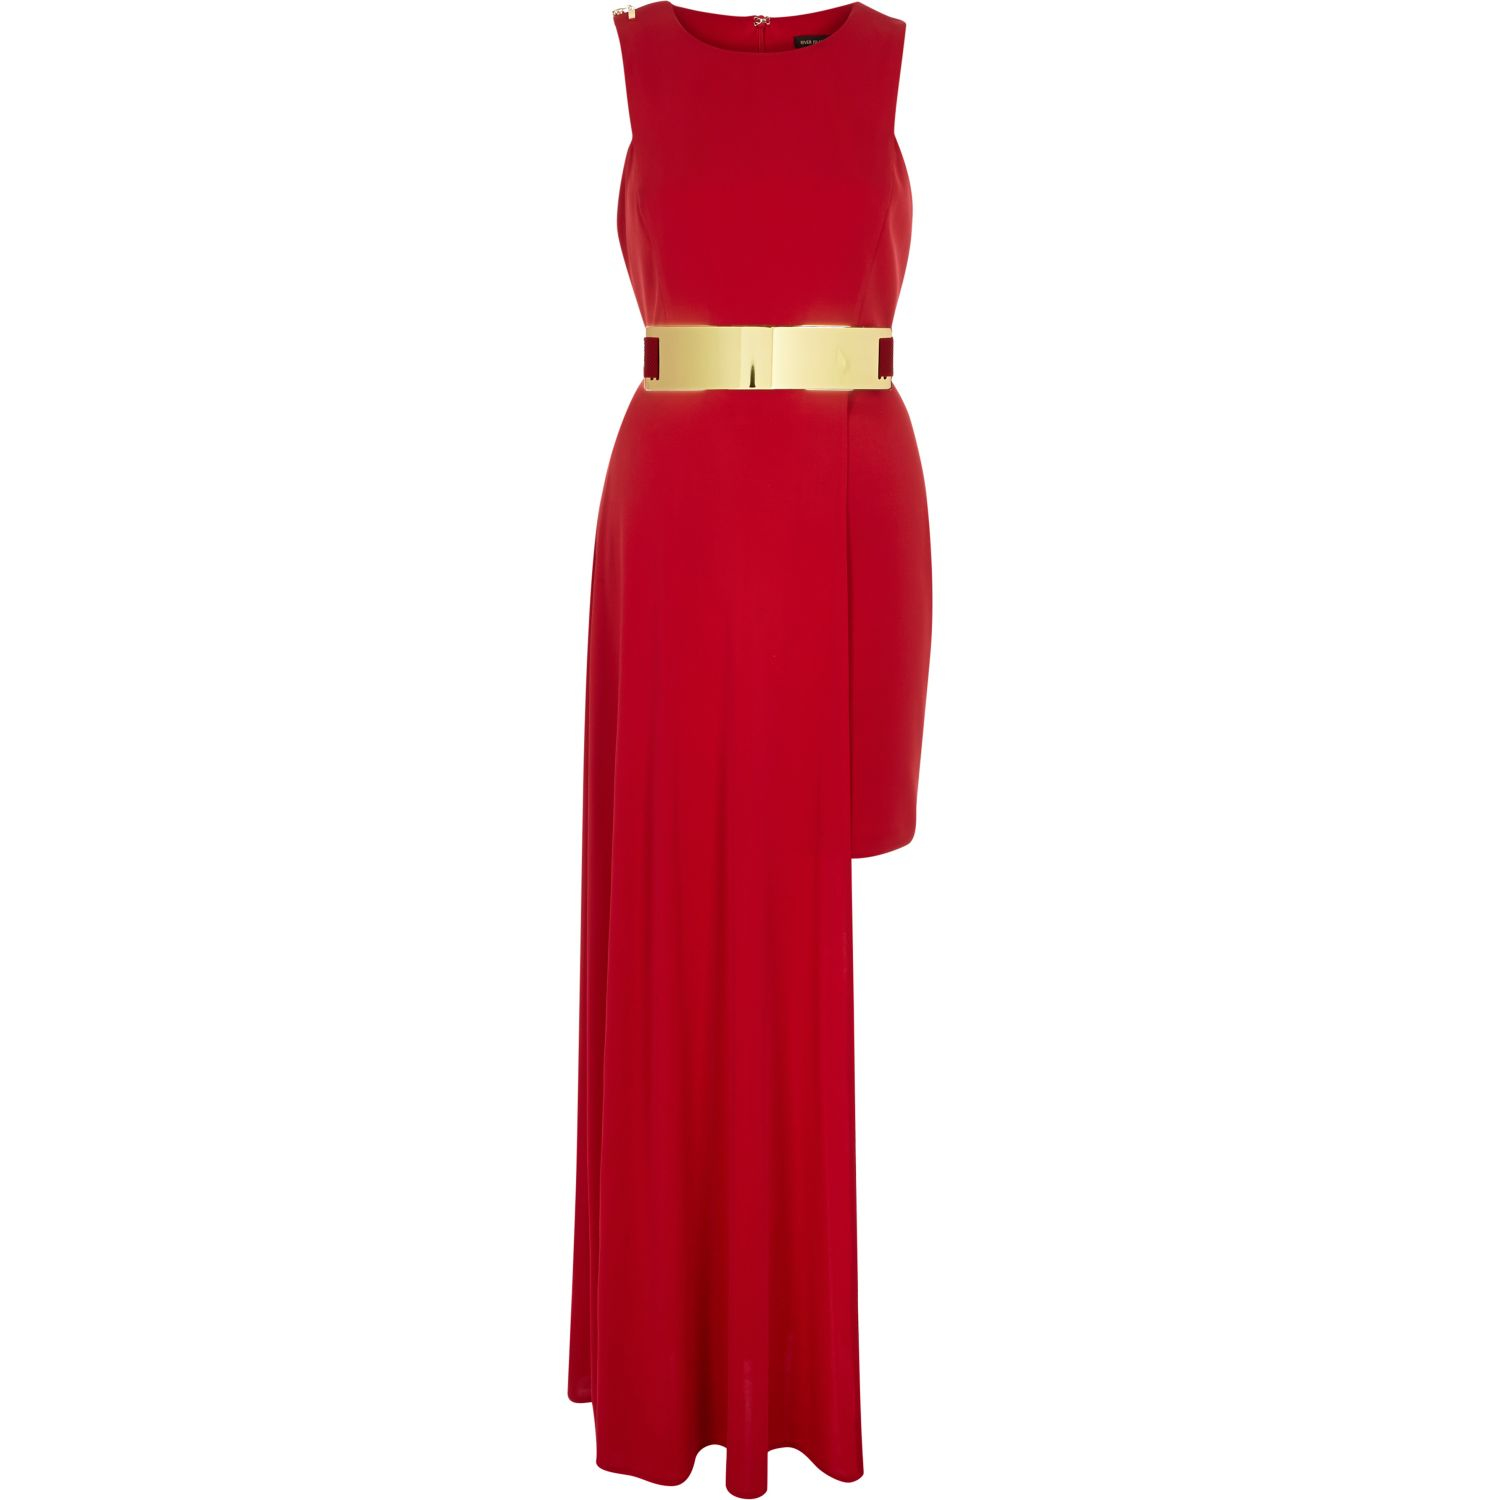 e495ad904698 River Island Red Belted High Low Hem Dress in Red - Lyst